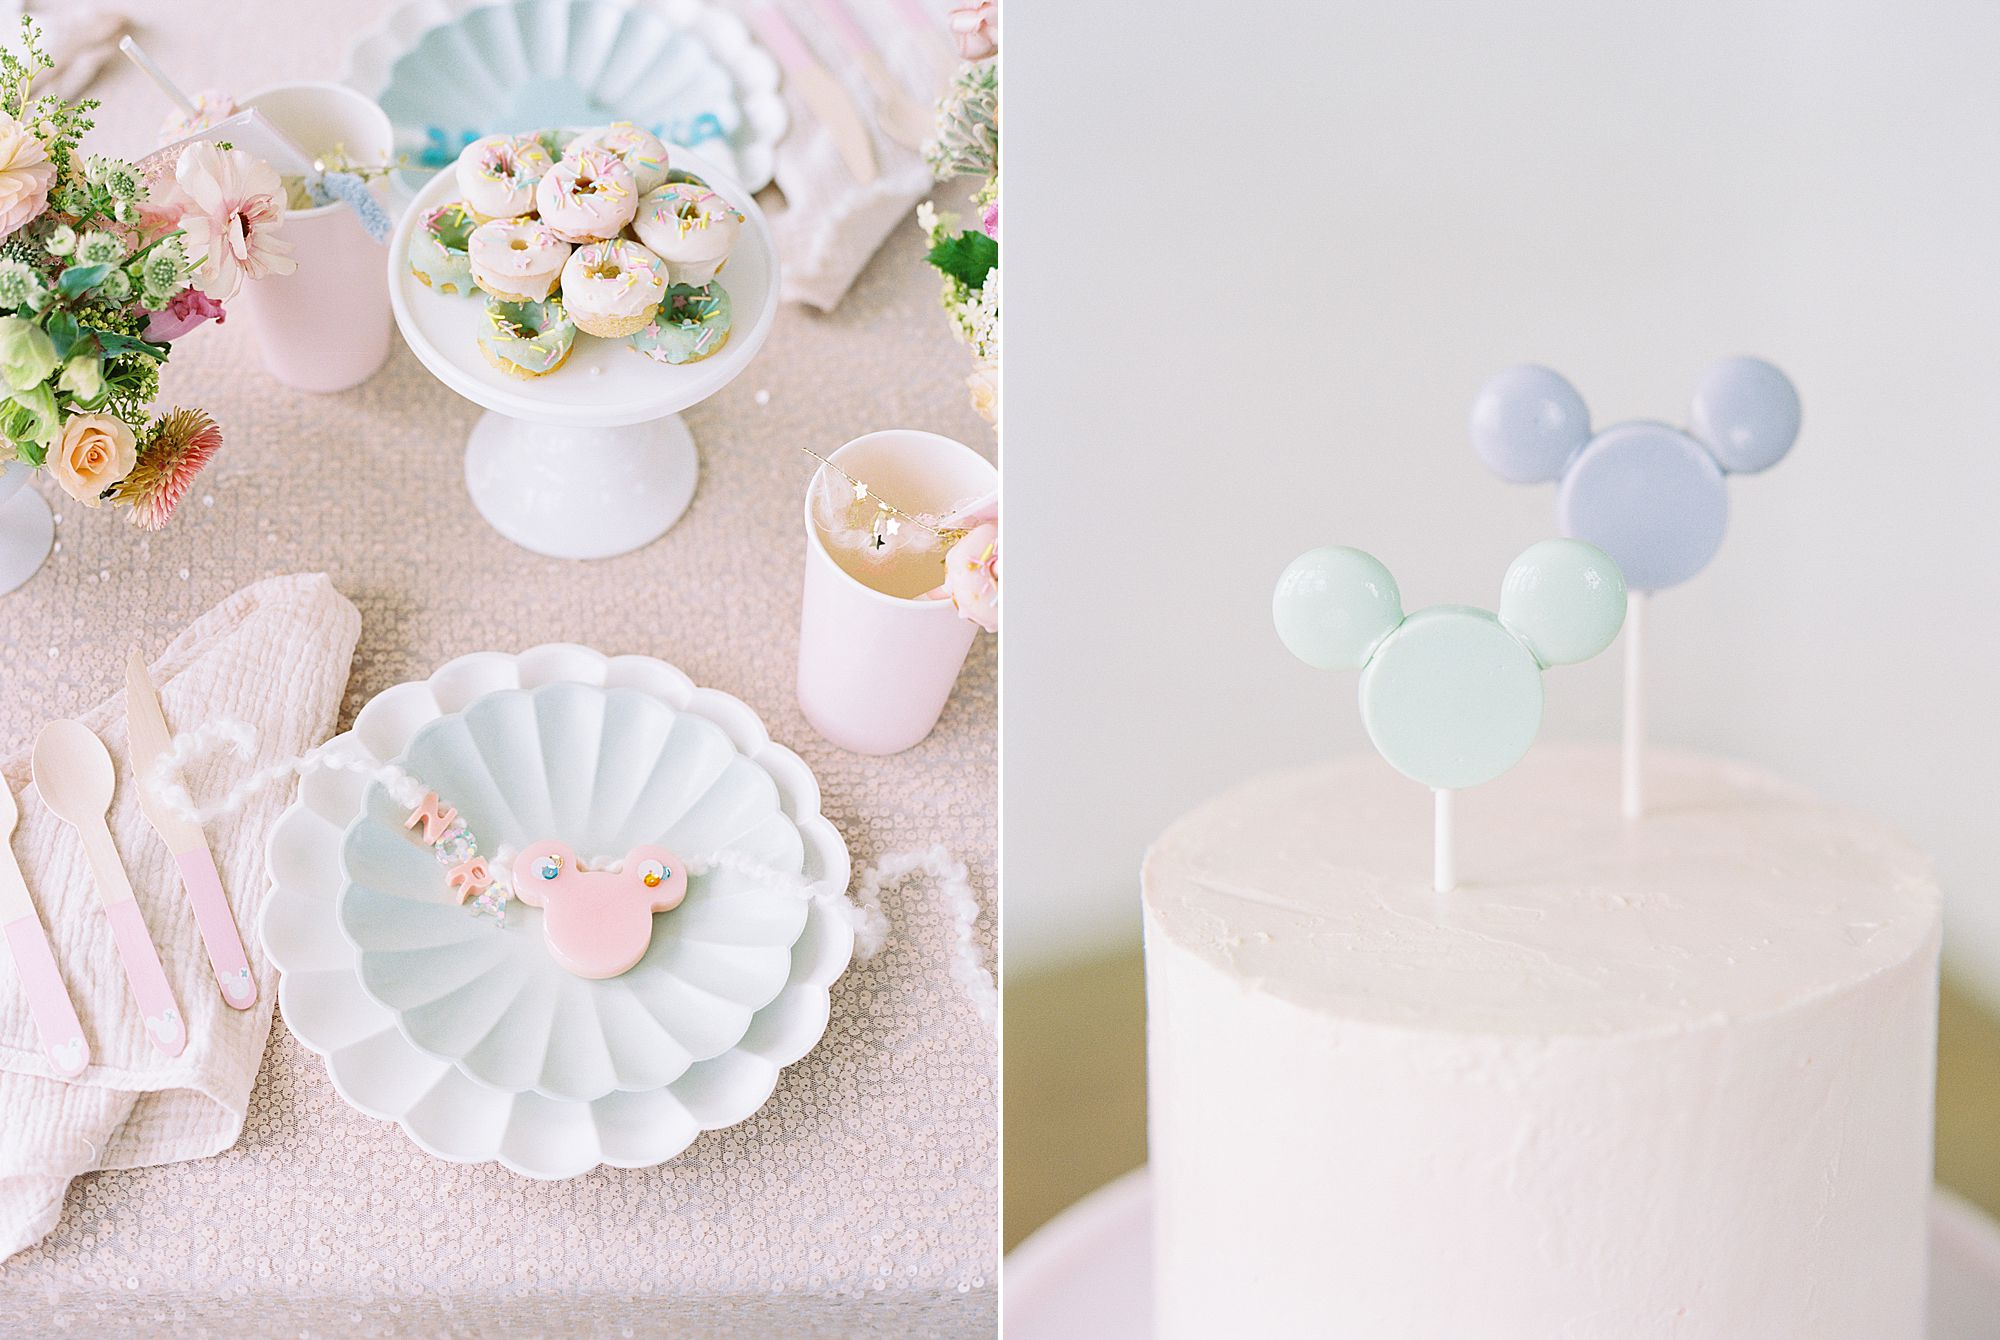 Vintage Disney Birthday Party for Princess Nora's Fourth Birthday - Featured on 100 Layer Cake - Ashley Baumgartner - Parker Grace Events_0004.jpg